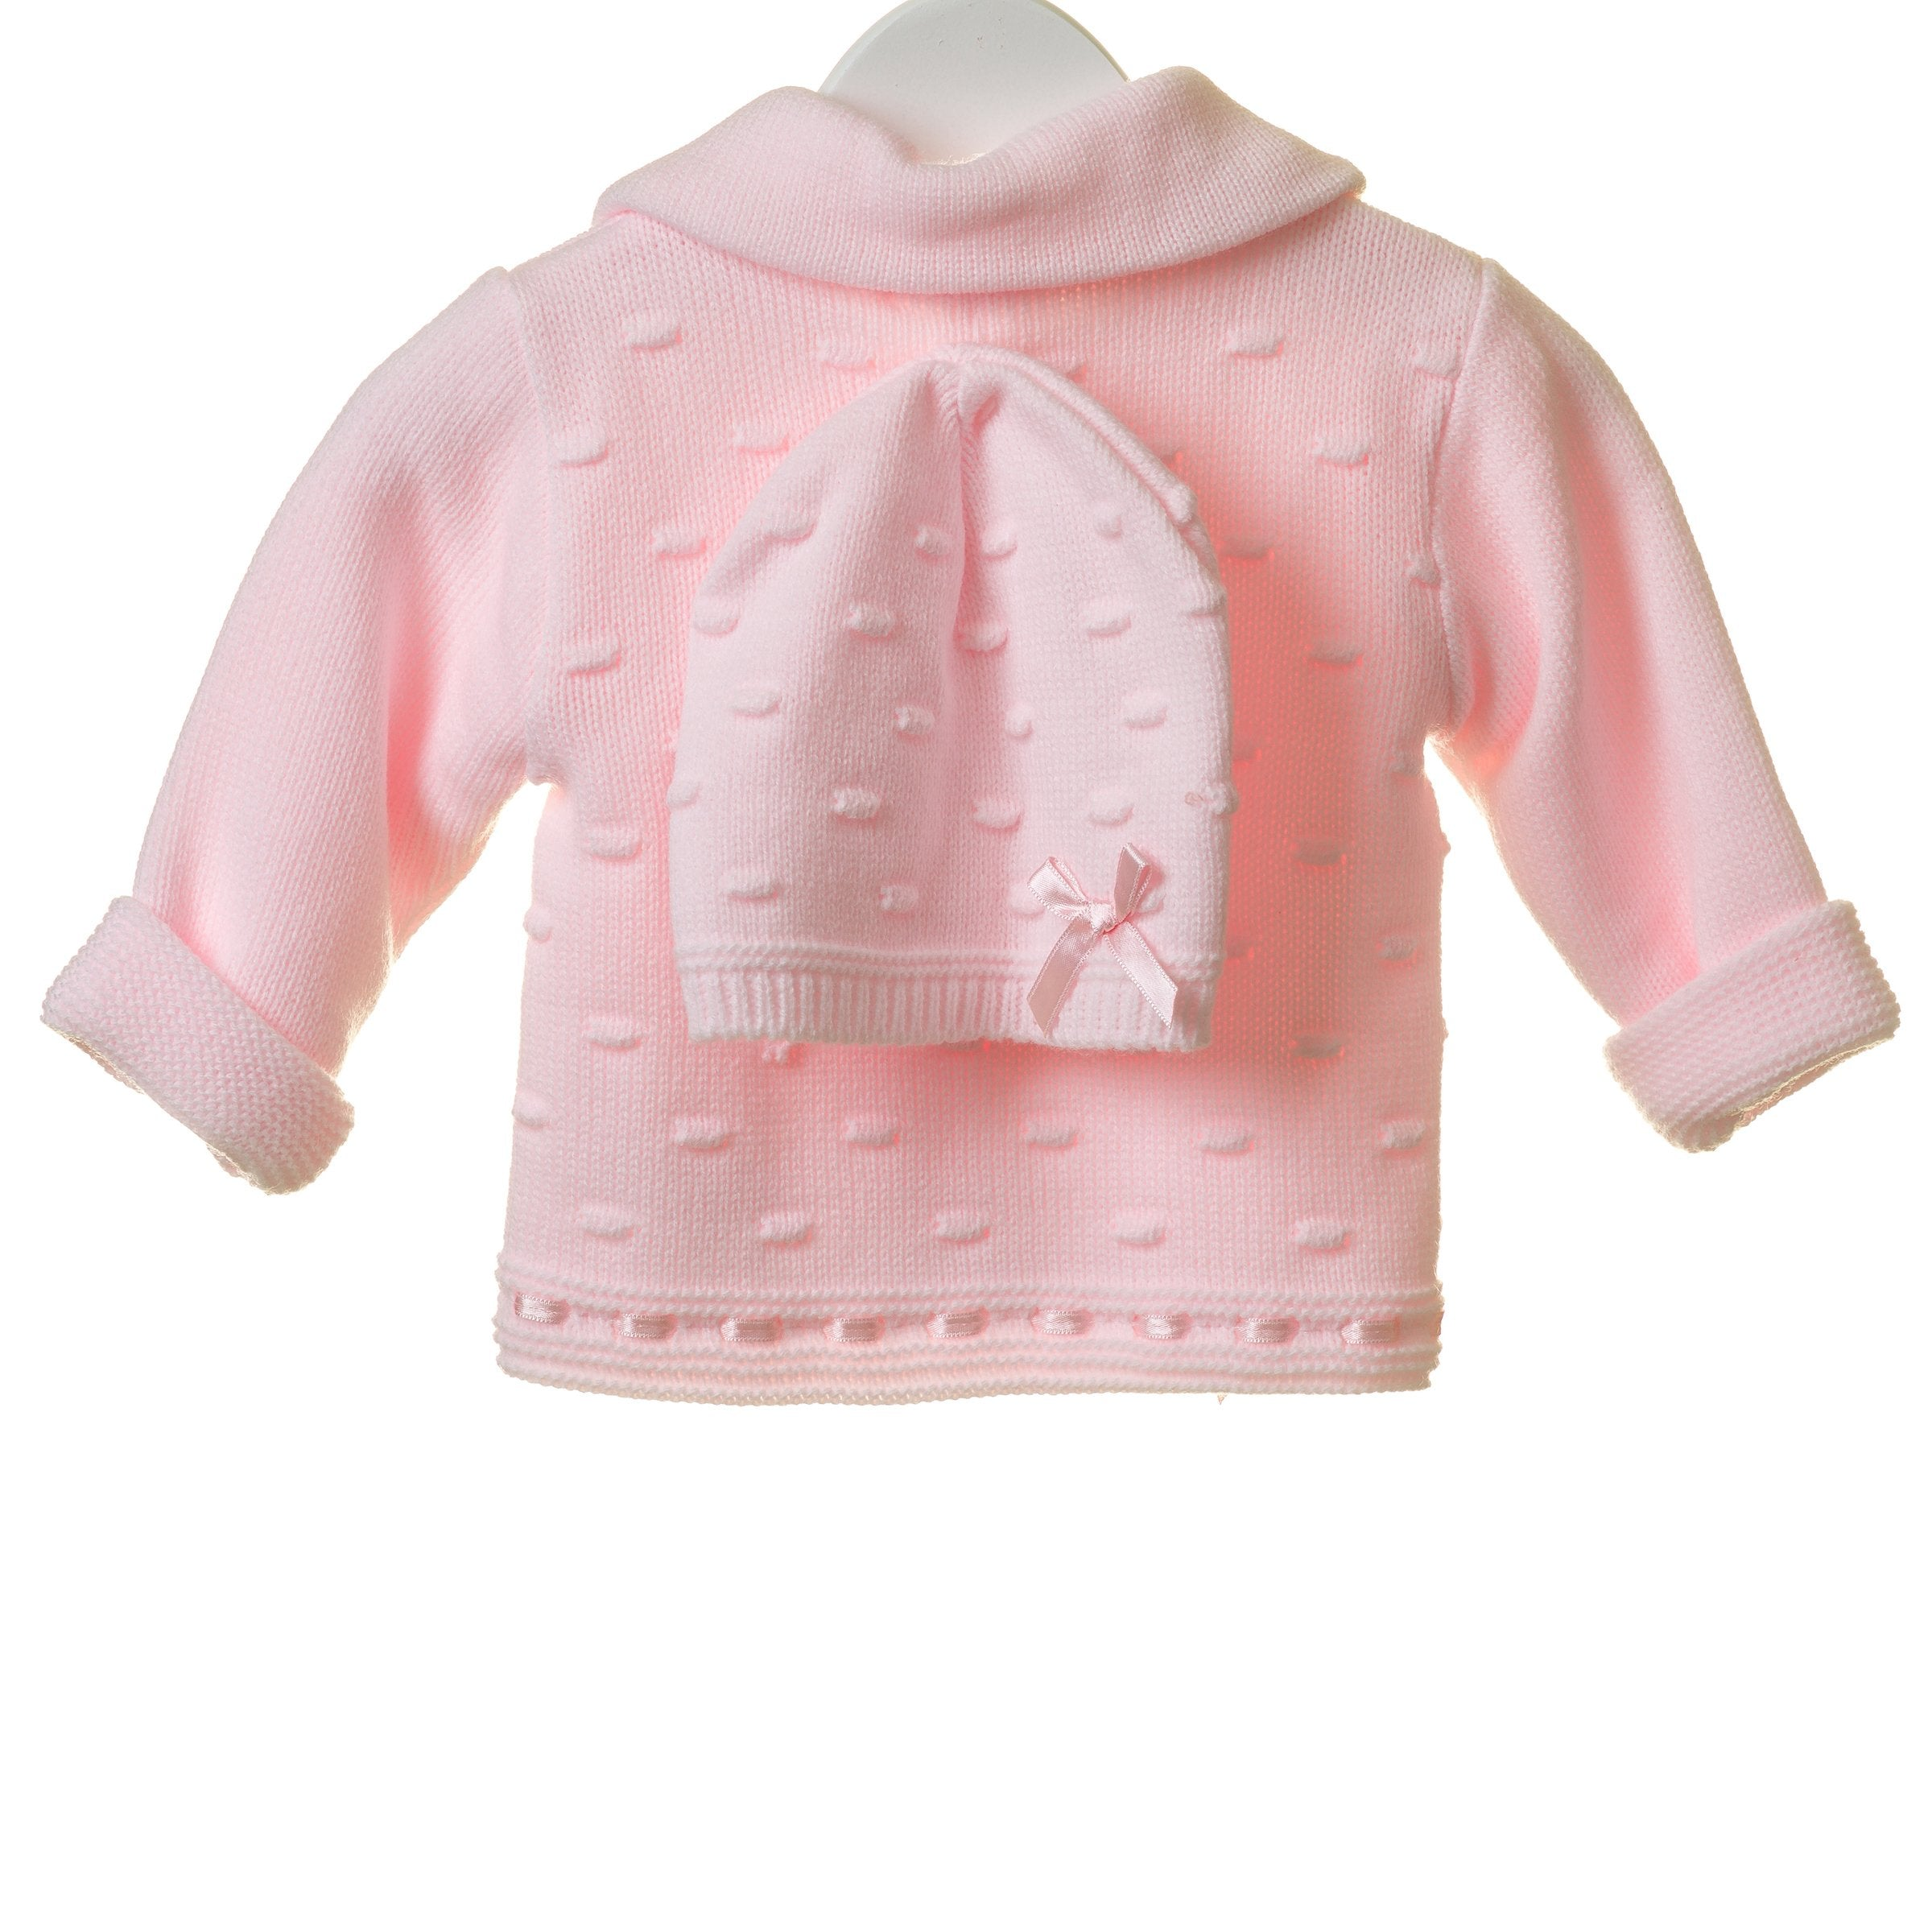 Blues Baby Knitted Girls Jacket